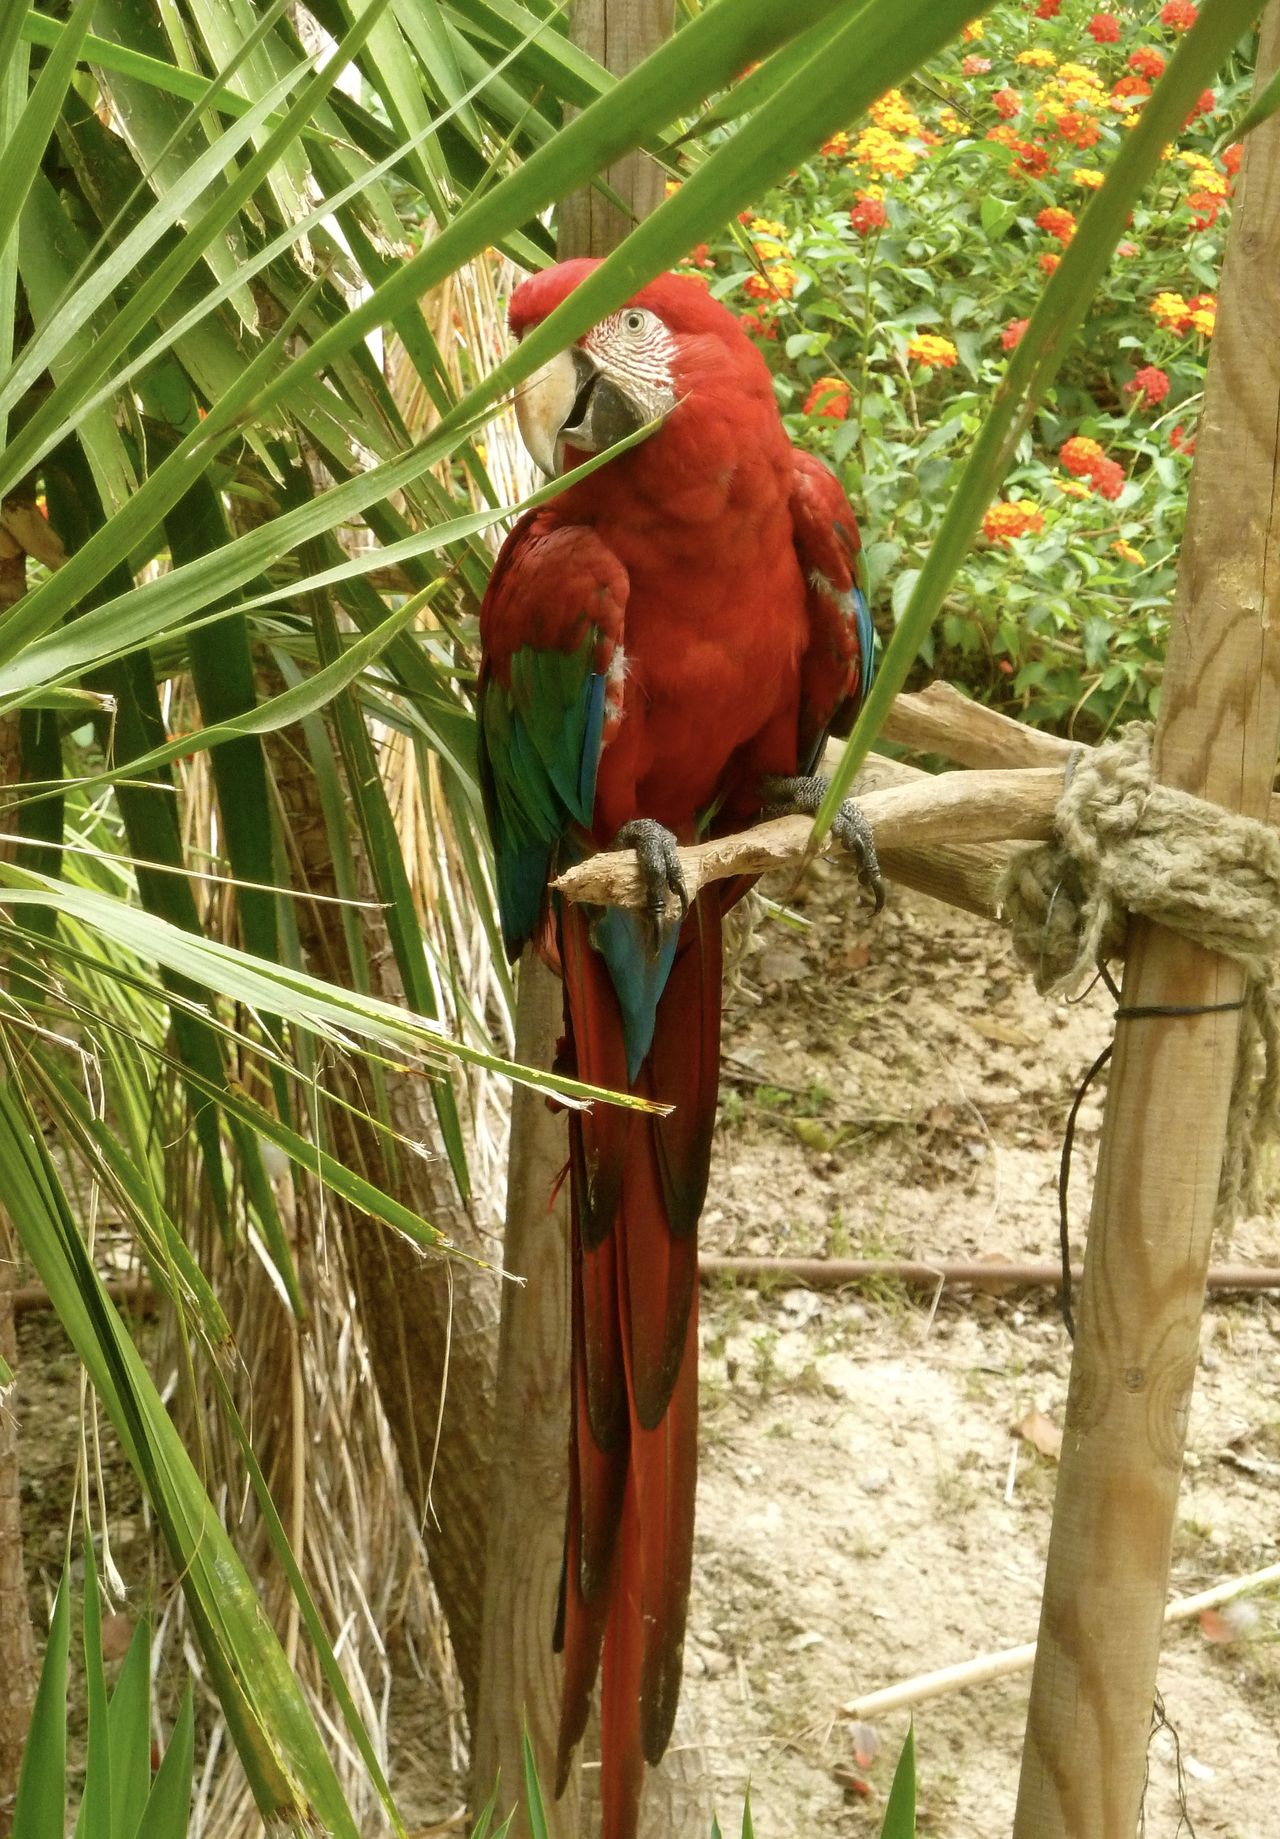 Animal Themes Bird Nature One Animal Outdoors Parrot Red Wildlife Zoo Macaws Macaw Parrot Macaw Red Macaw Portrait Getty Images Getty & Eyeem Getty & EyeEm Collection